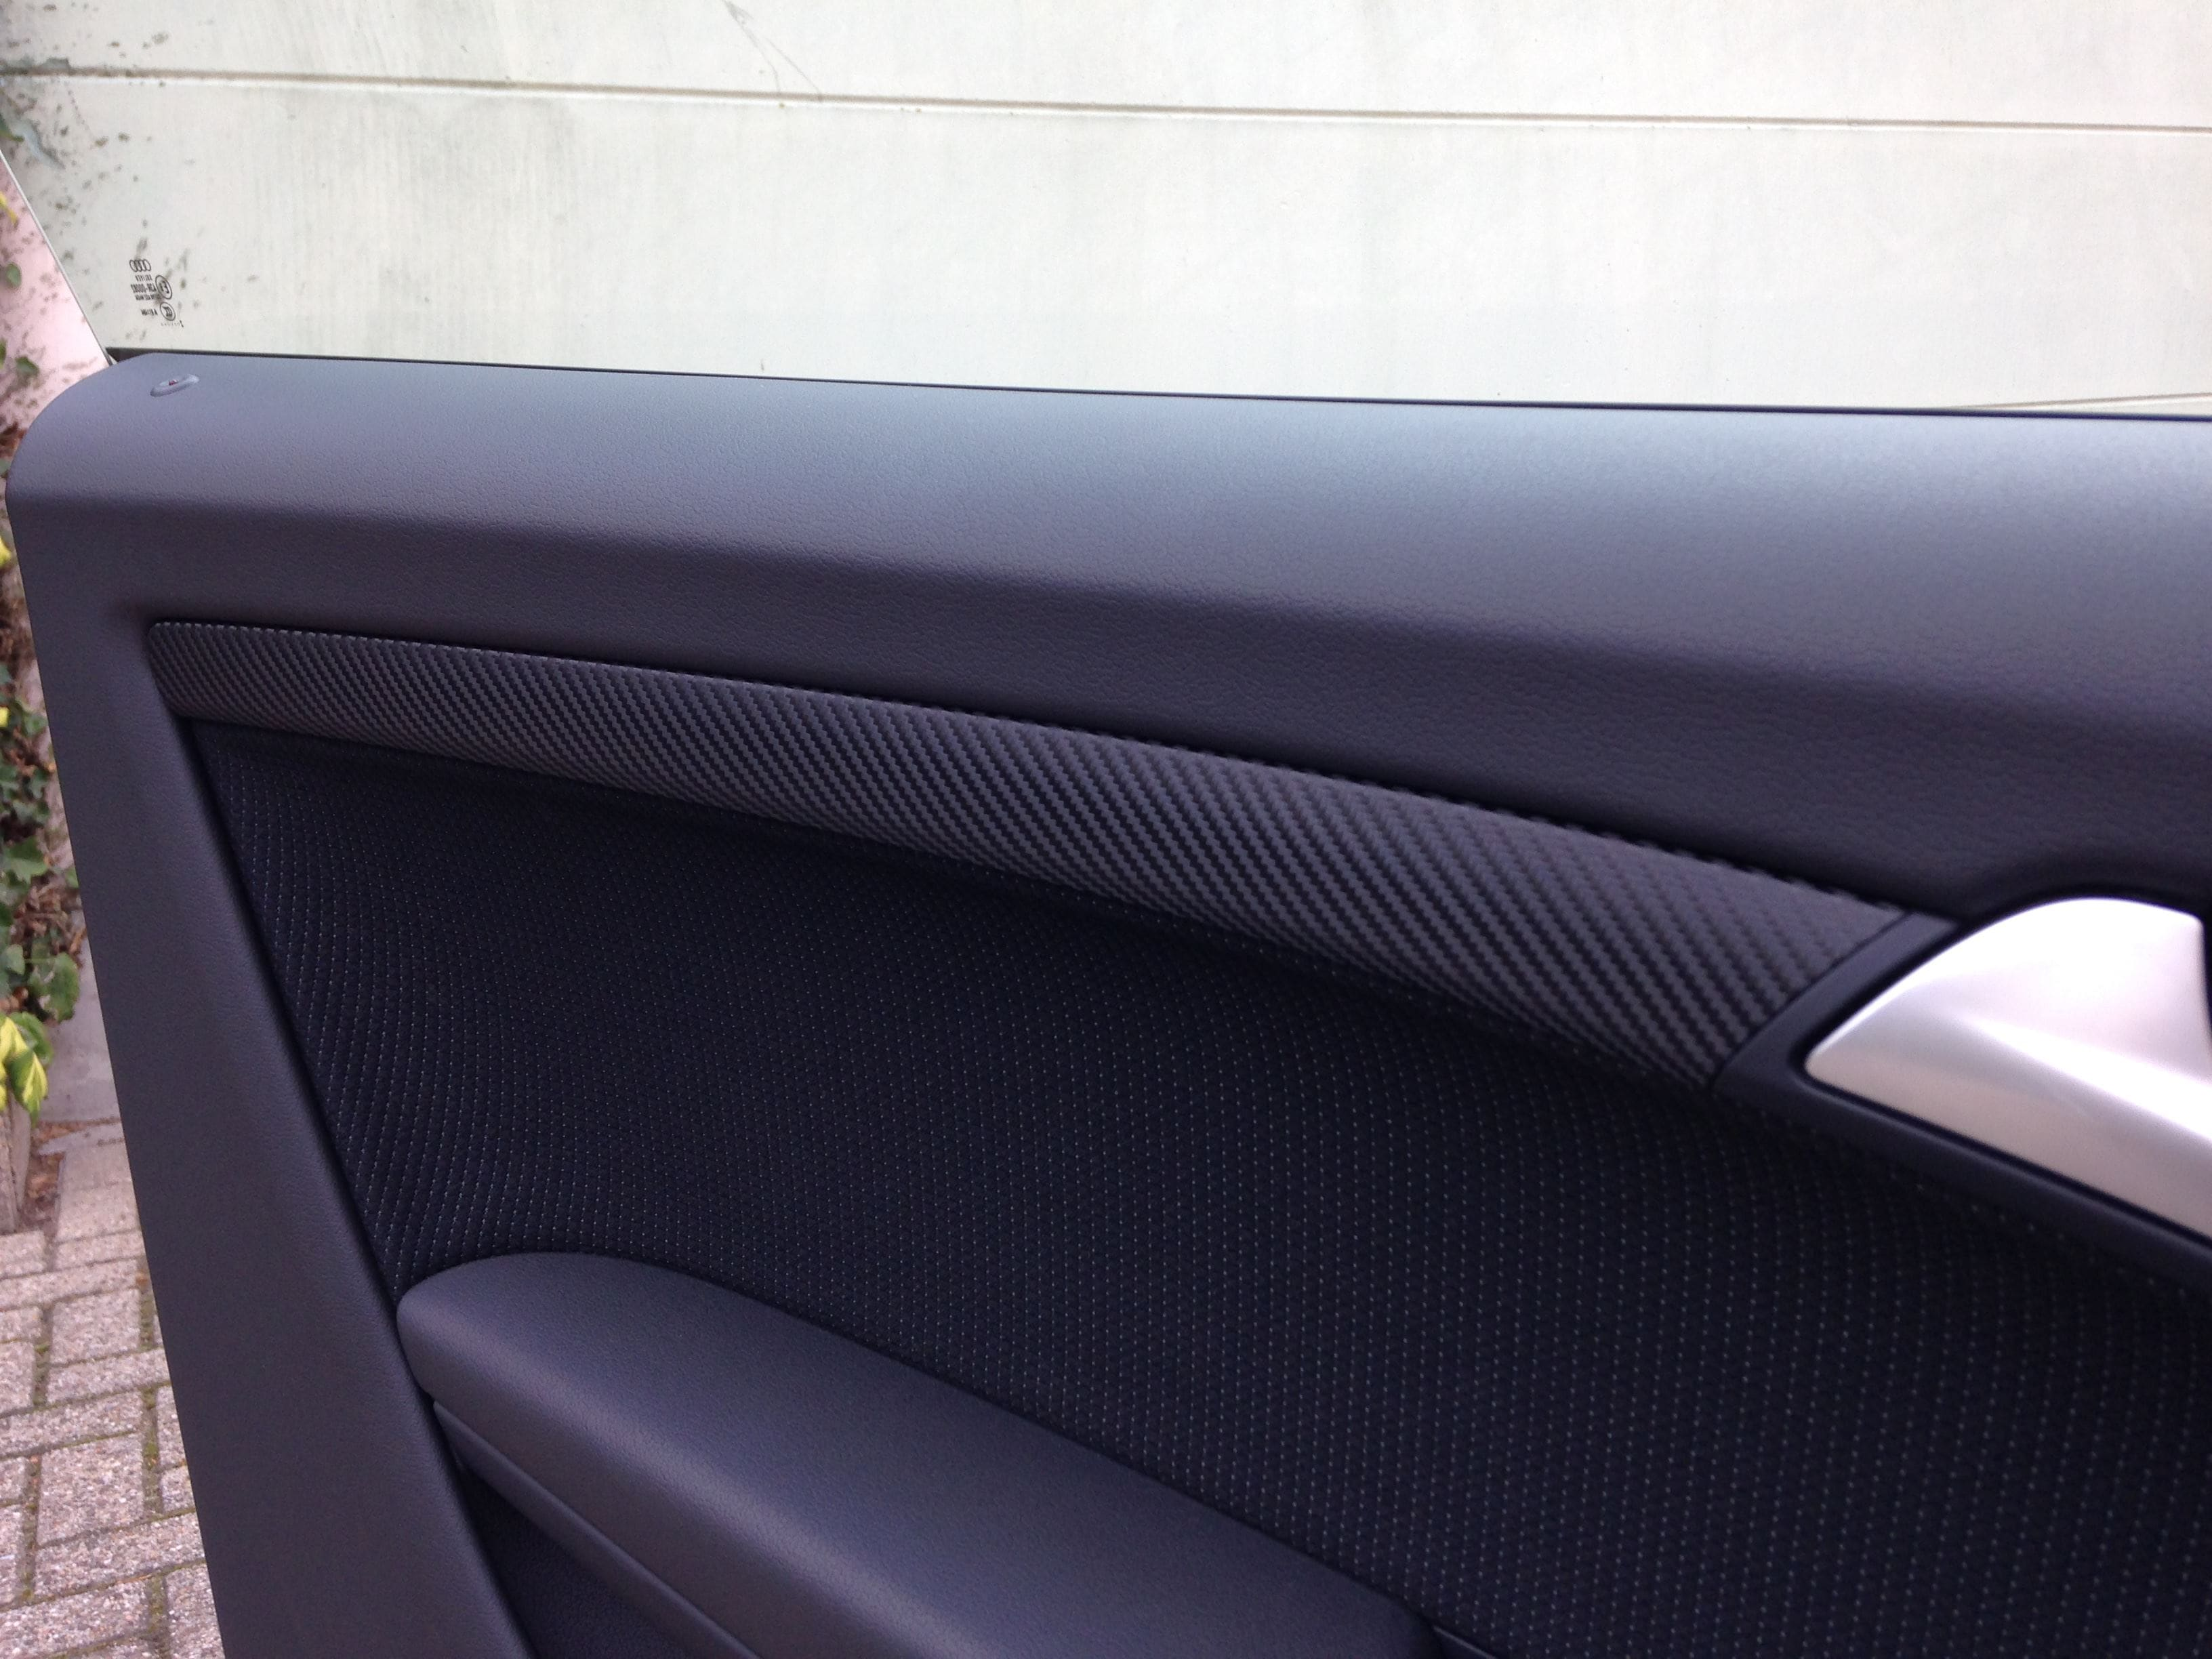 Audi A5 met Carbon Wrappings, Carwrapping door Wrapmyride.nu Foto-nr:4538, ©2021